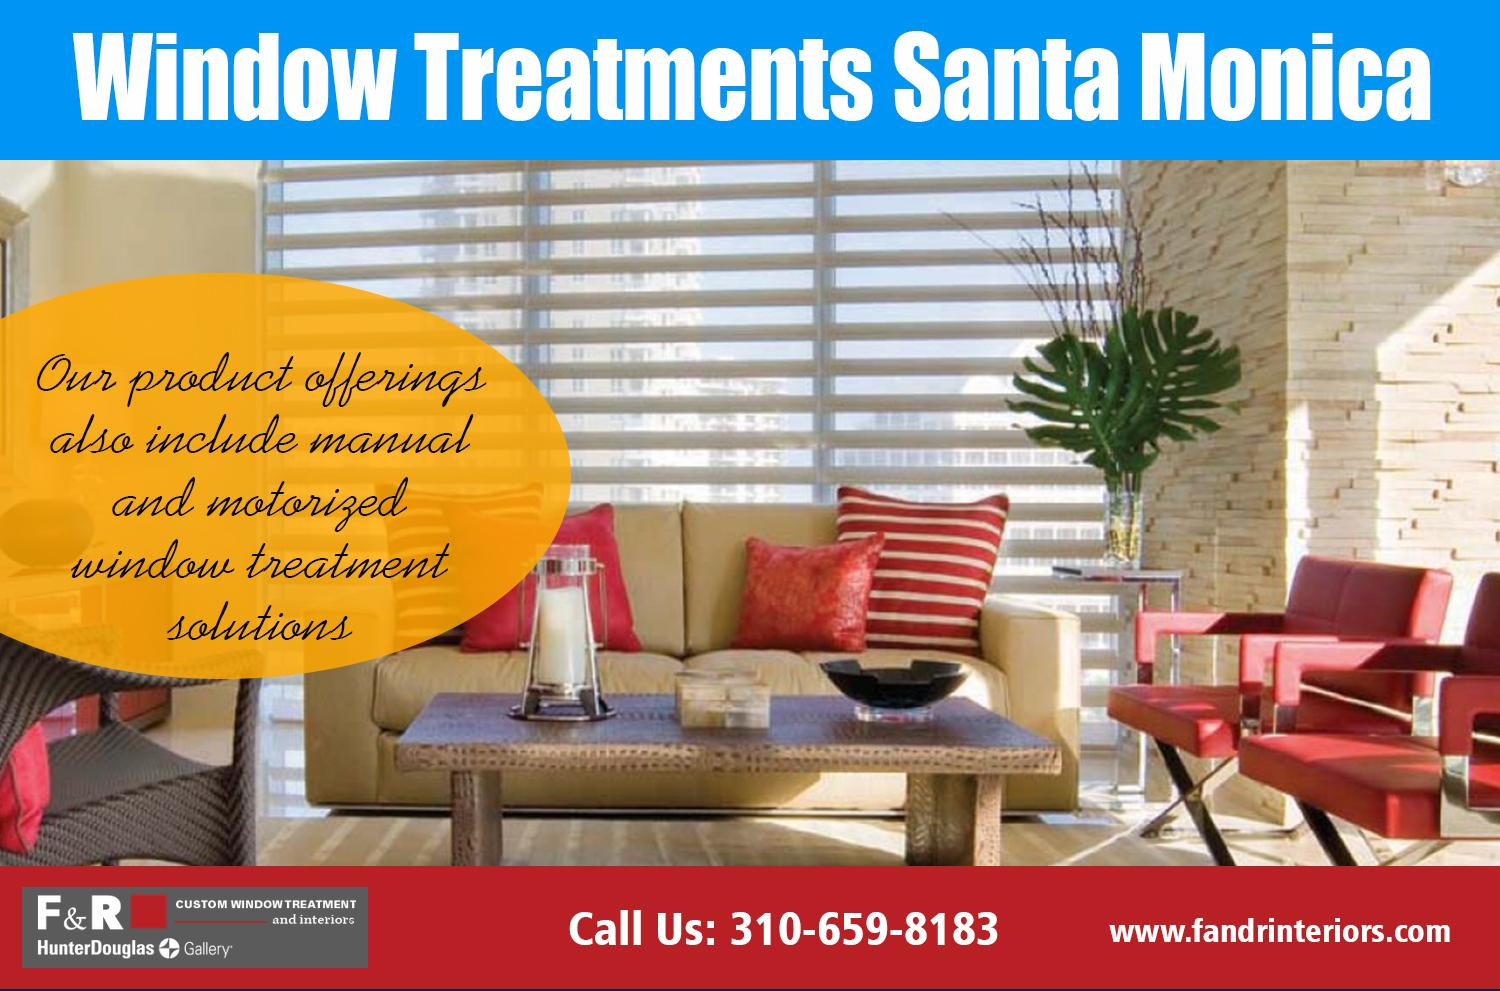 Window Treatments Santa Monica| http://fandrinteriors.com/